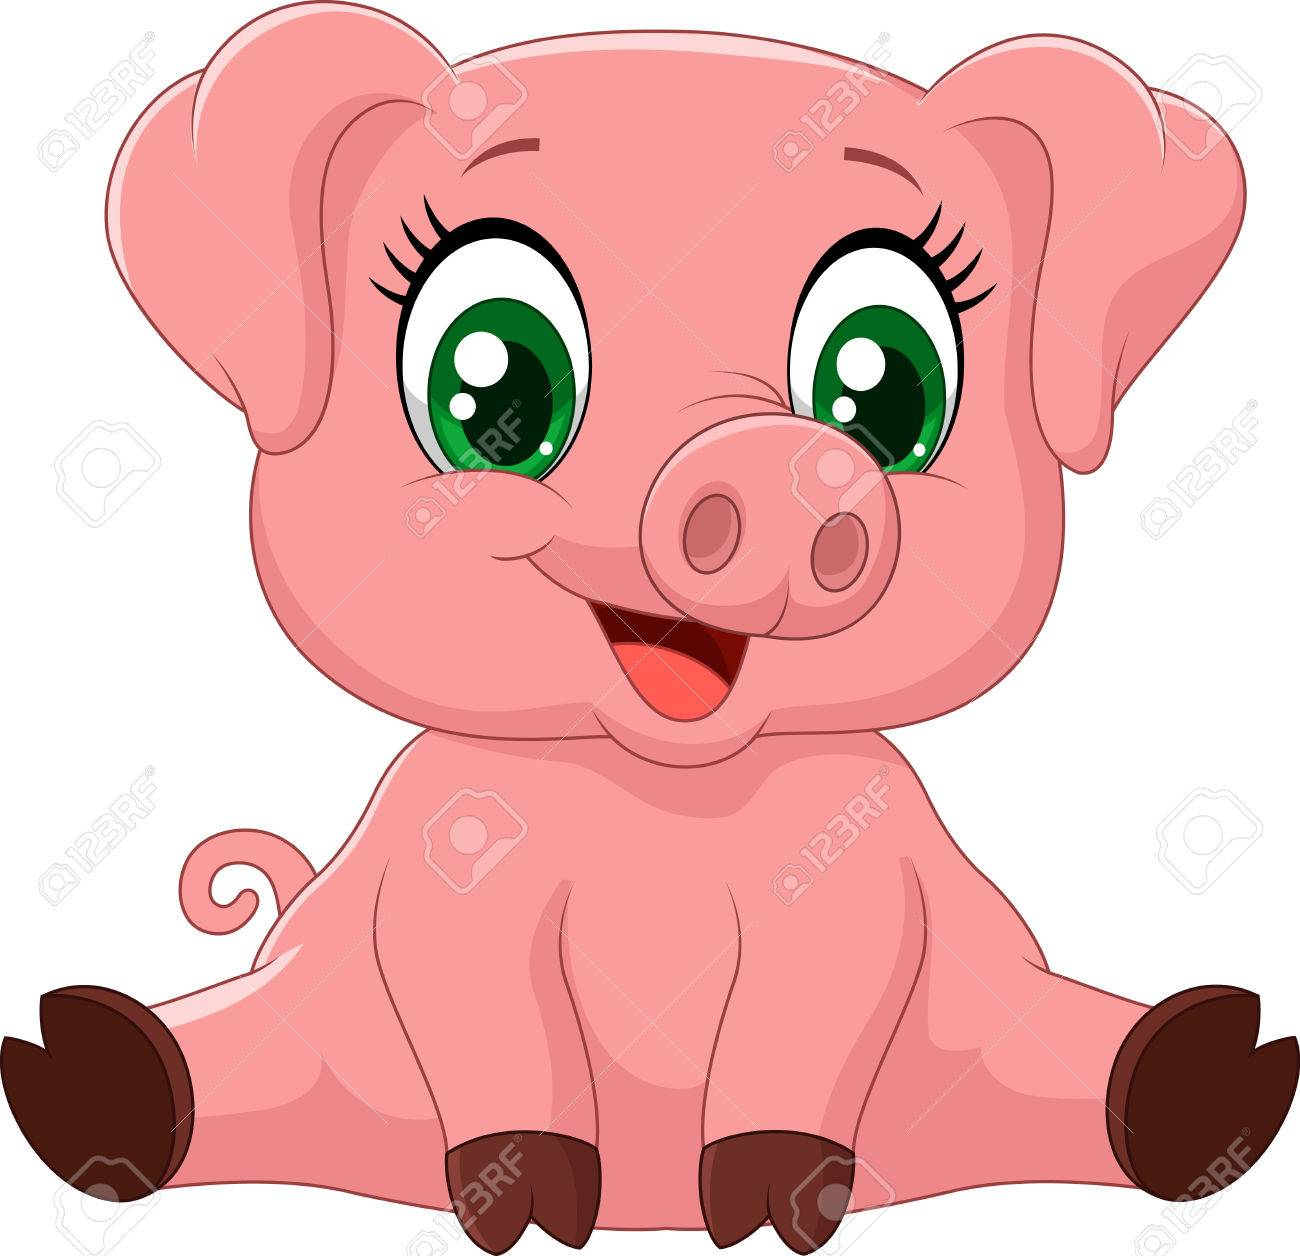 cartoon adorable baby pig vector illustration royalty free cliparts rh 123rf com pig factory newtownabbey pig factory newtownabbey